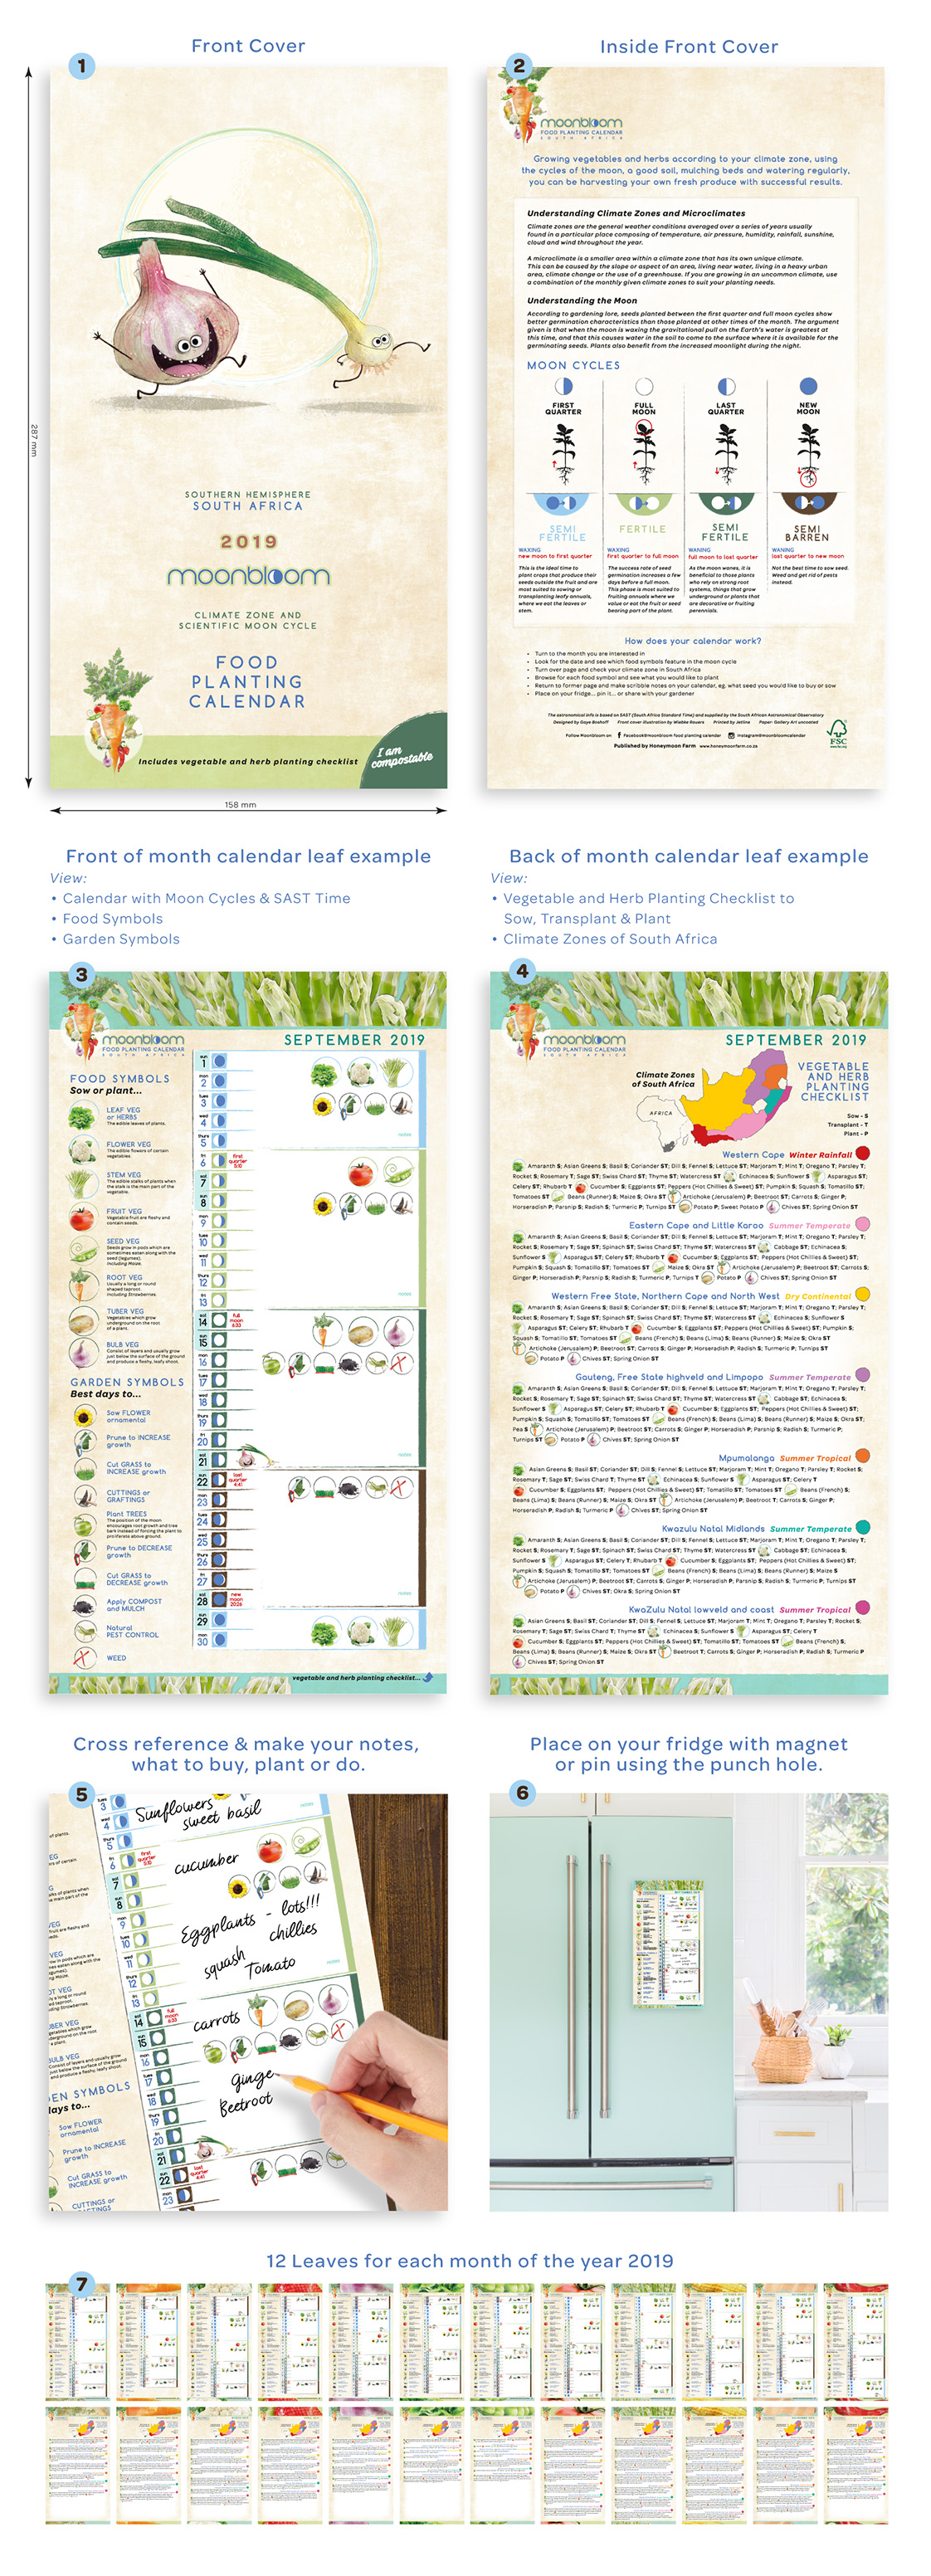 Moonbloom South Africa vegetable and herb food planting calendar mon cycles